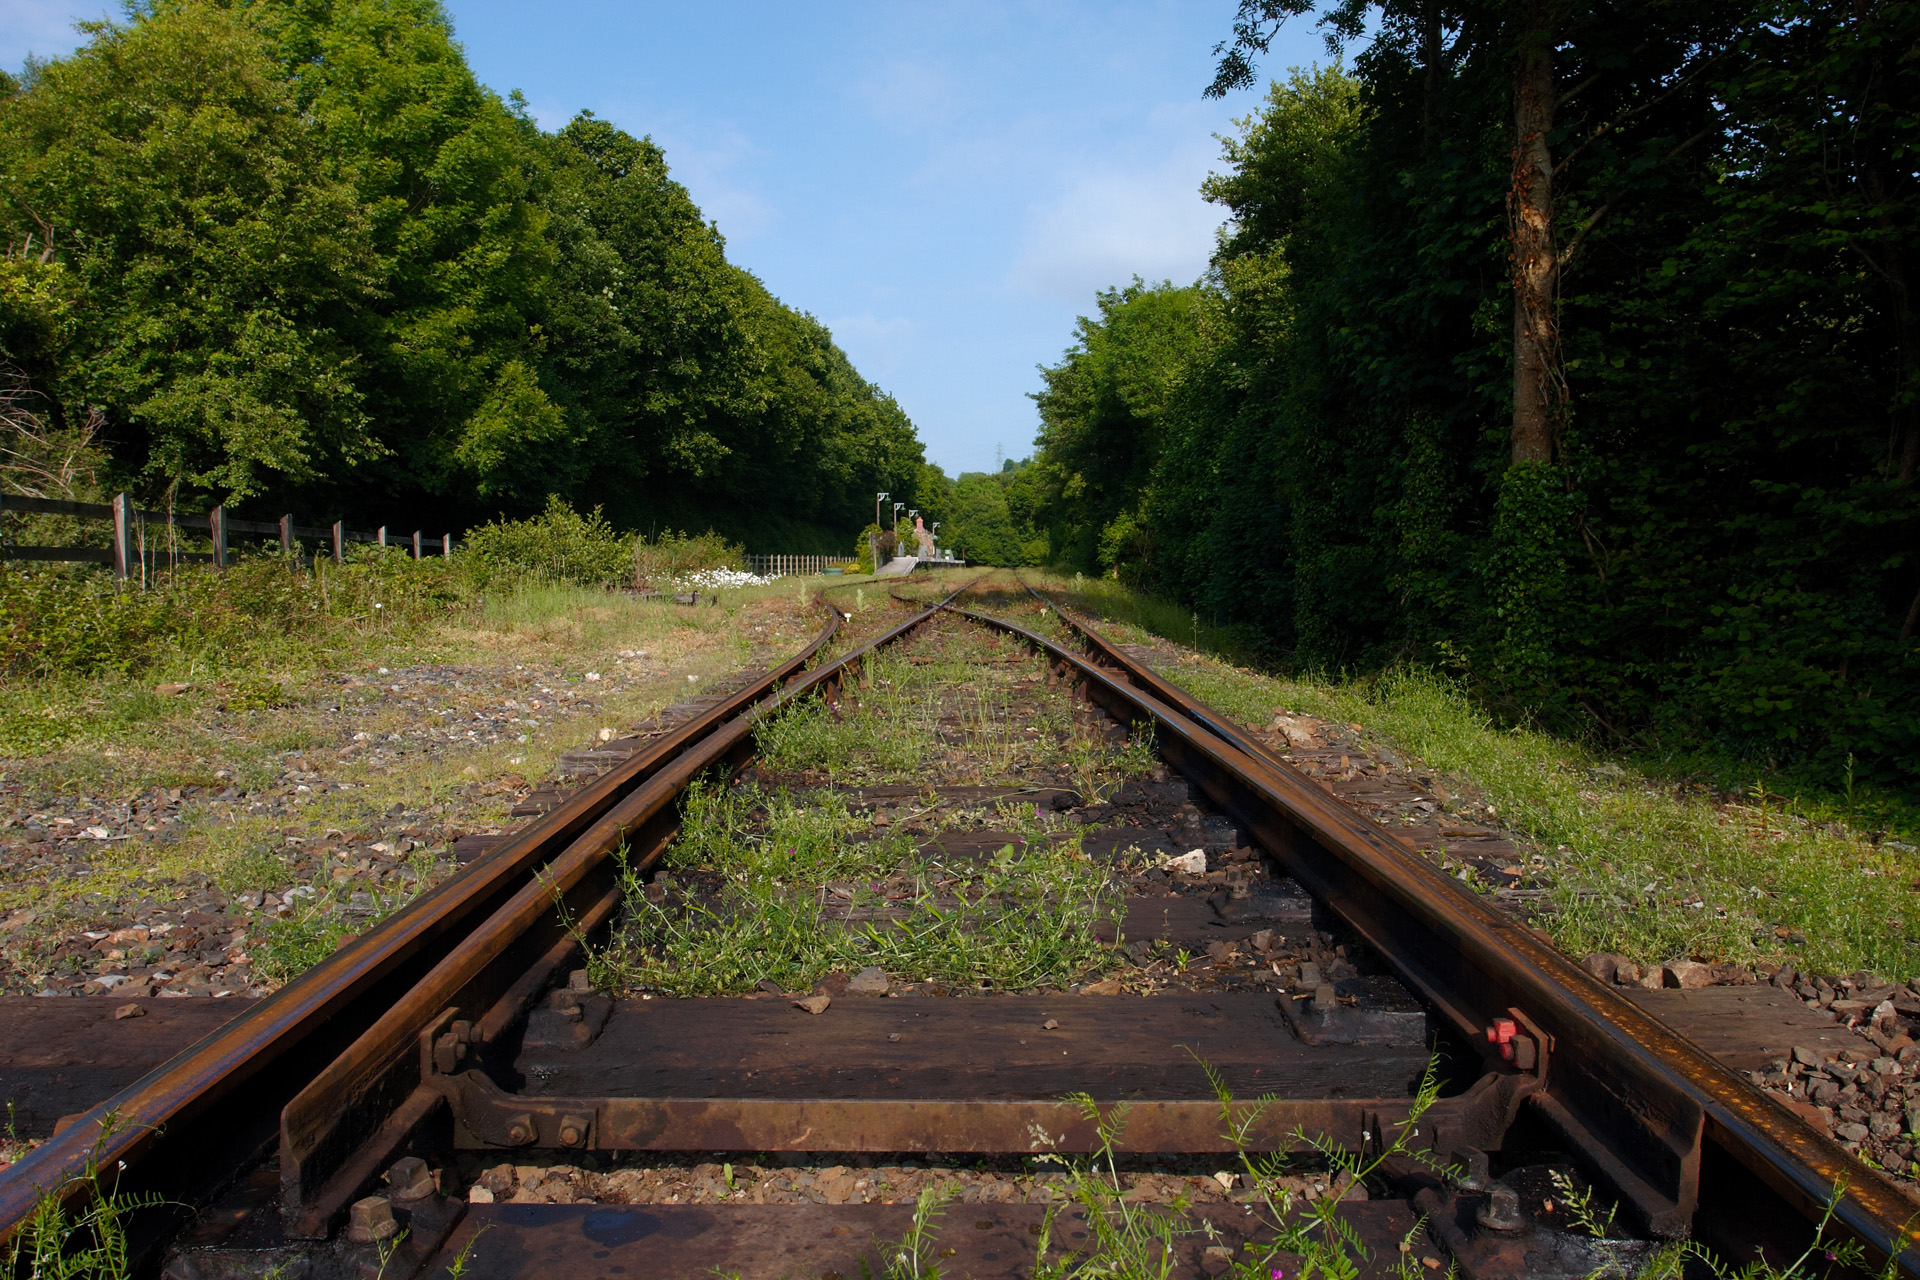 Old railway tracks at Boscarne Junction station